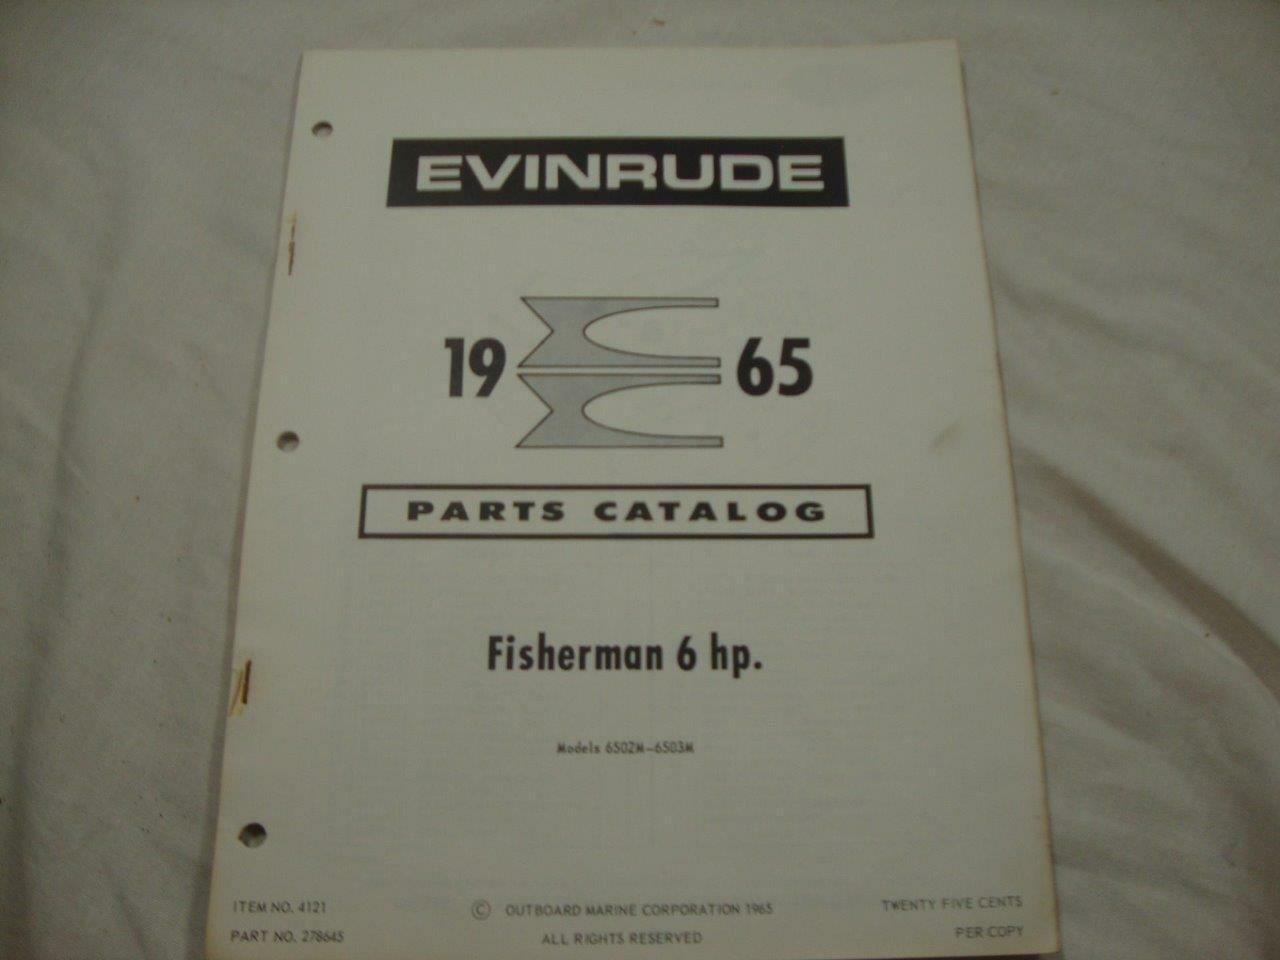 Evinrude outboard parts catalog manual 1965 Fisherman 6 HP 278645 1 of  3Only 1 available ...